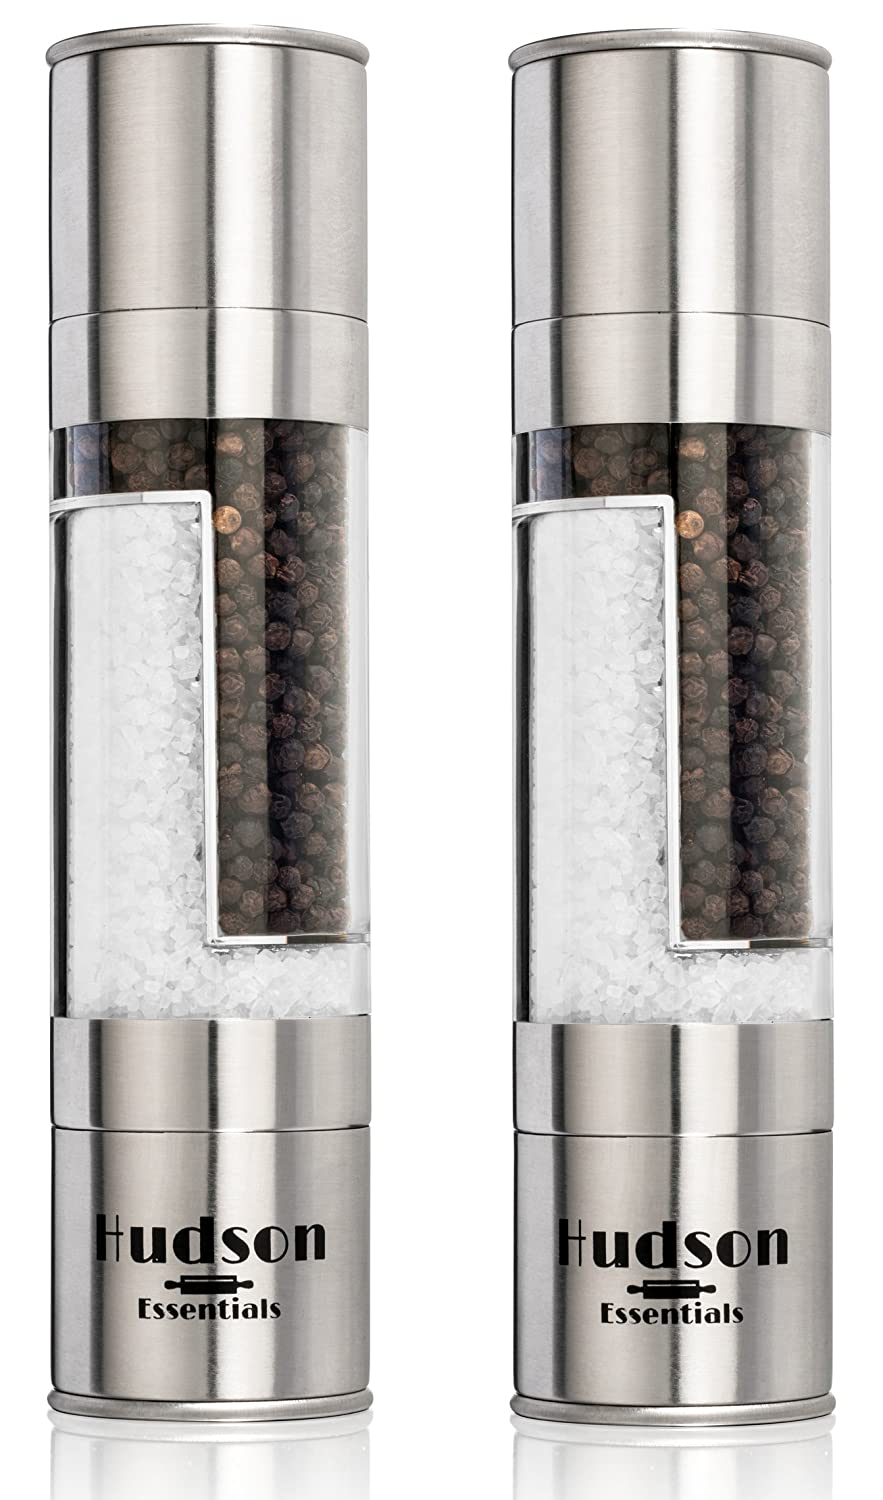 Hudson Deluxe 2 in 1 Salt and Pepper Grinder Set - Ceramic Blade & Stainless Steel - Set of 2 Manual Mills Hudson Essentials PM-302